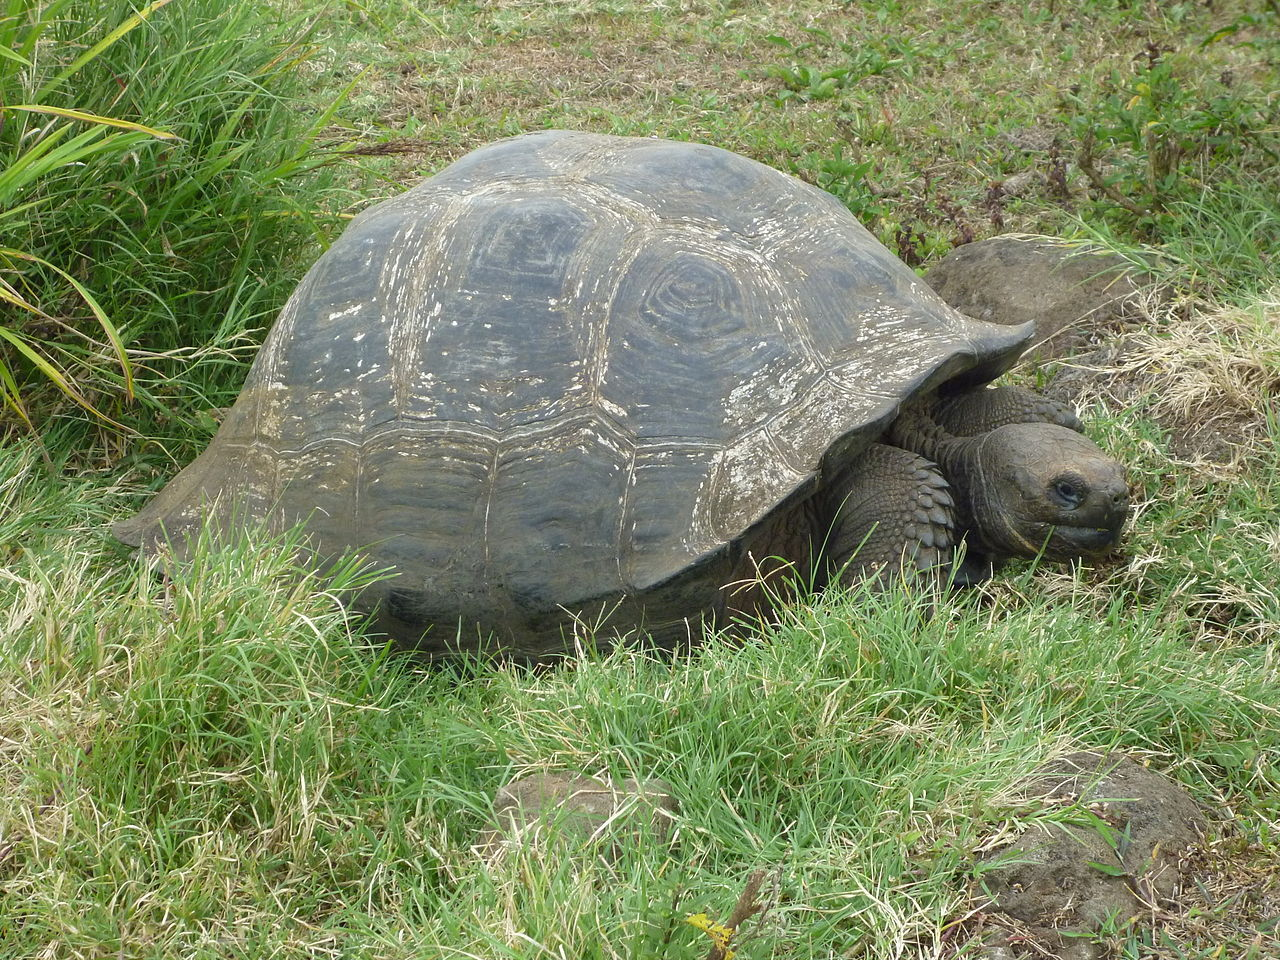 1280px-Gigantic_Turtle_on_the_Island_of_Santa_Cruz_in_the_Galapagos.jpg